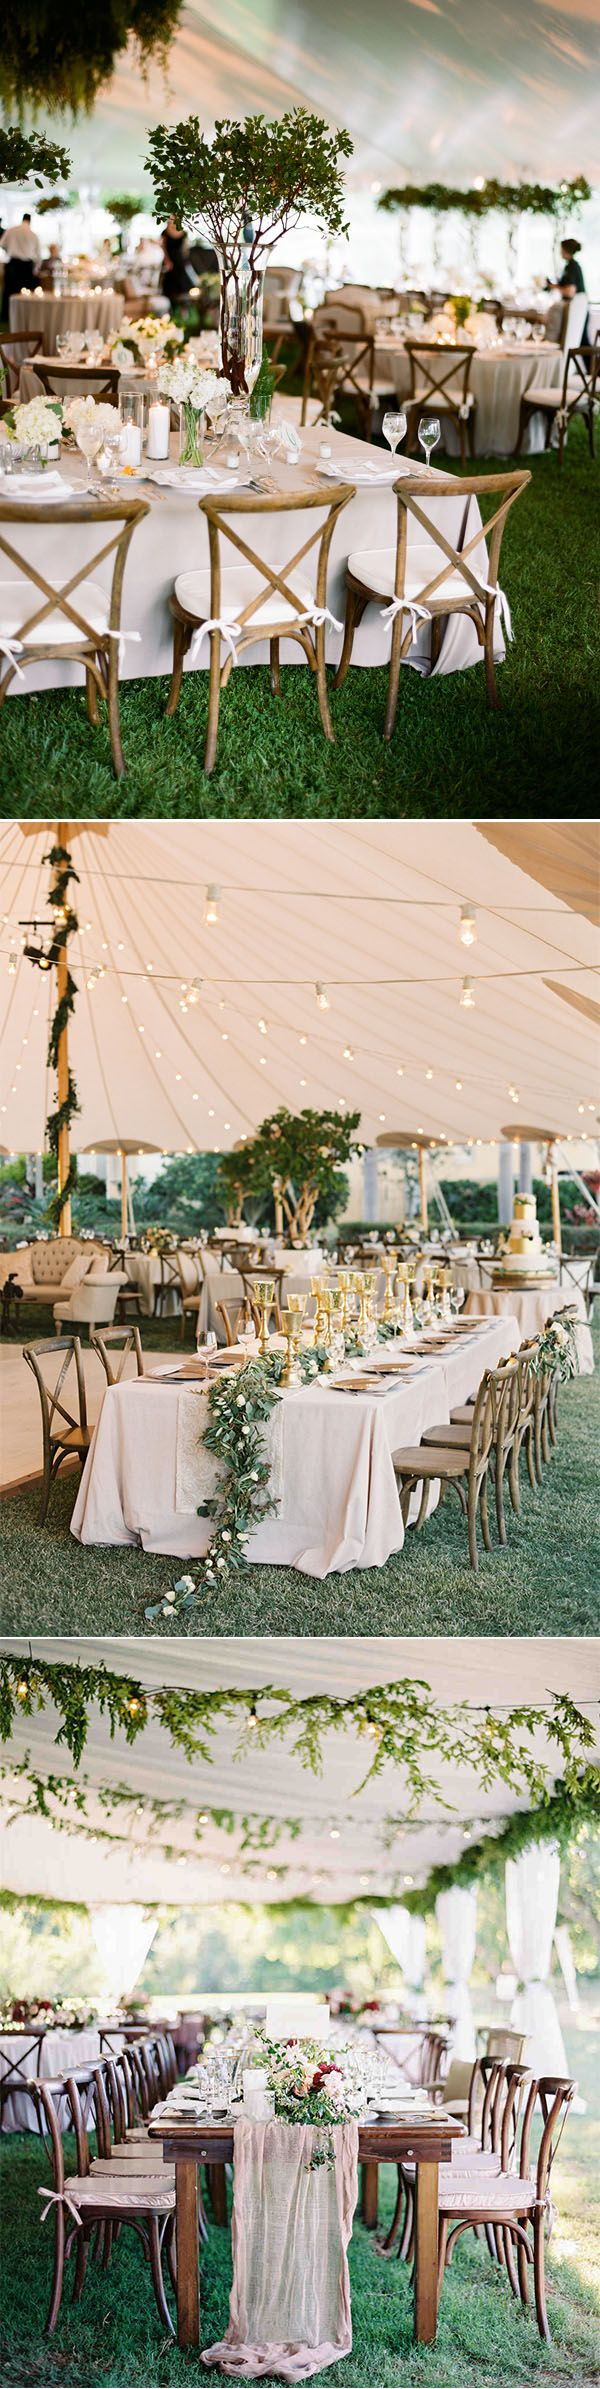 11 fancy tented wedding decoration ideas to stun your guests greenery tented wedding reception decorating ideas junglespirit Gallery